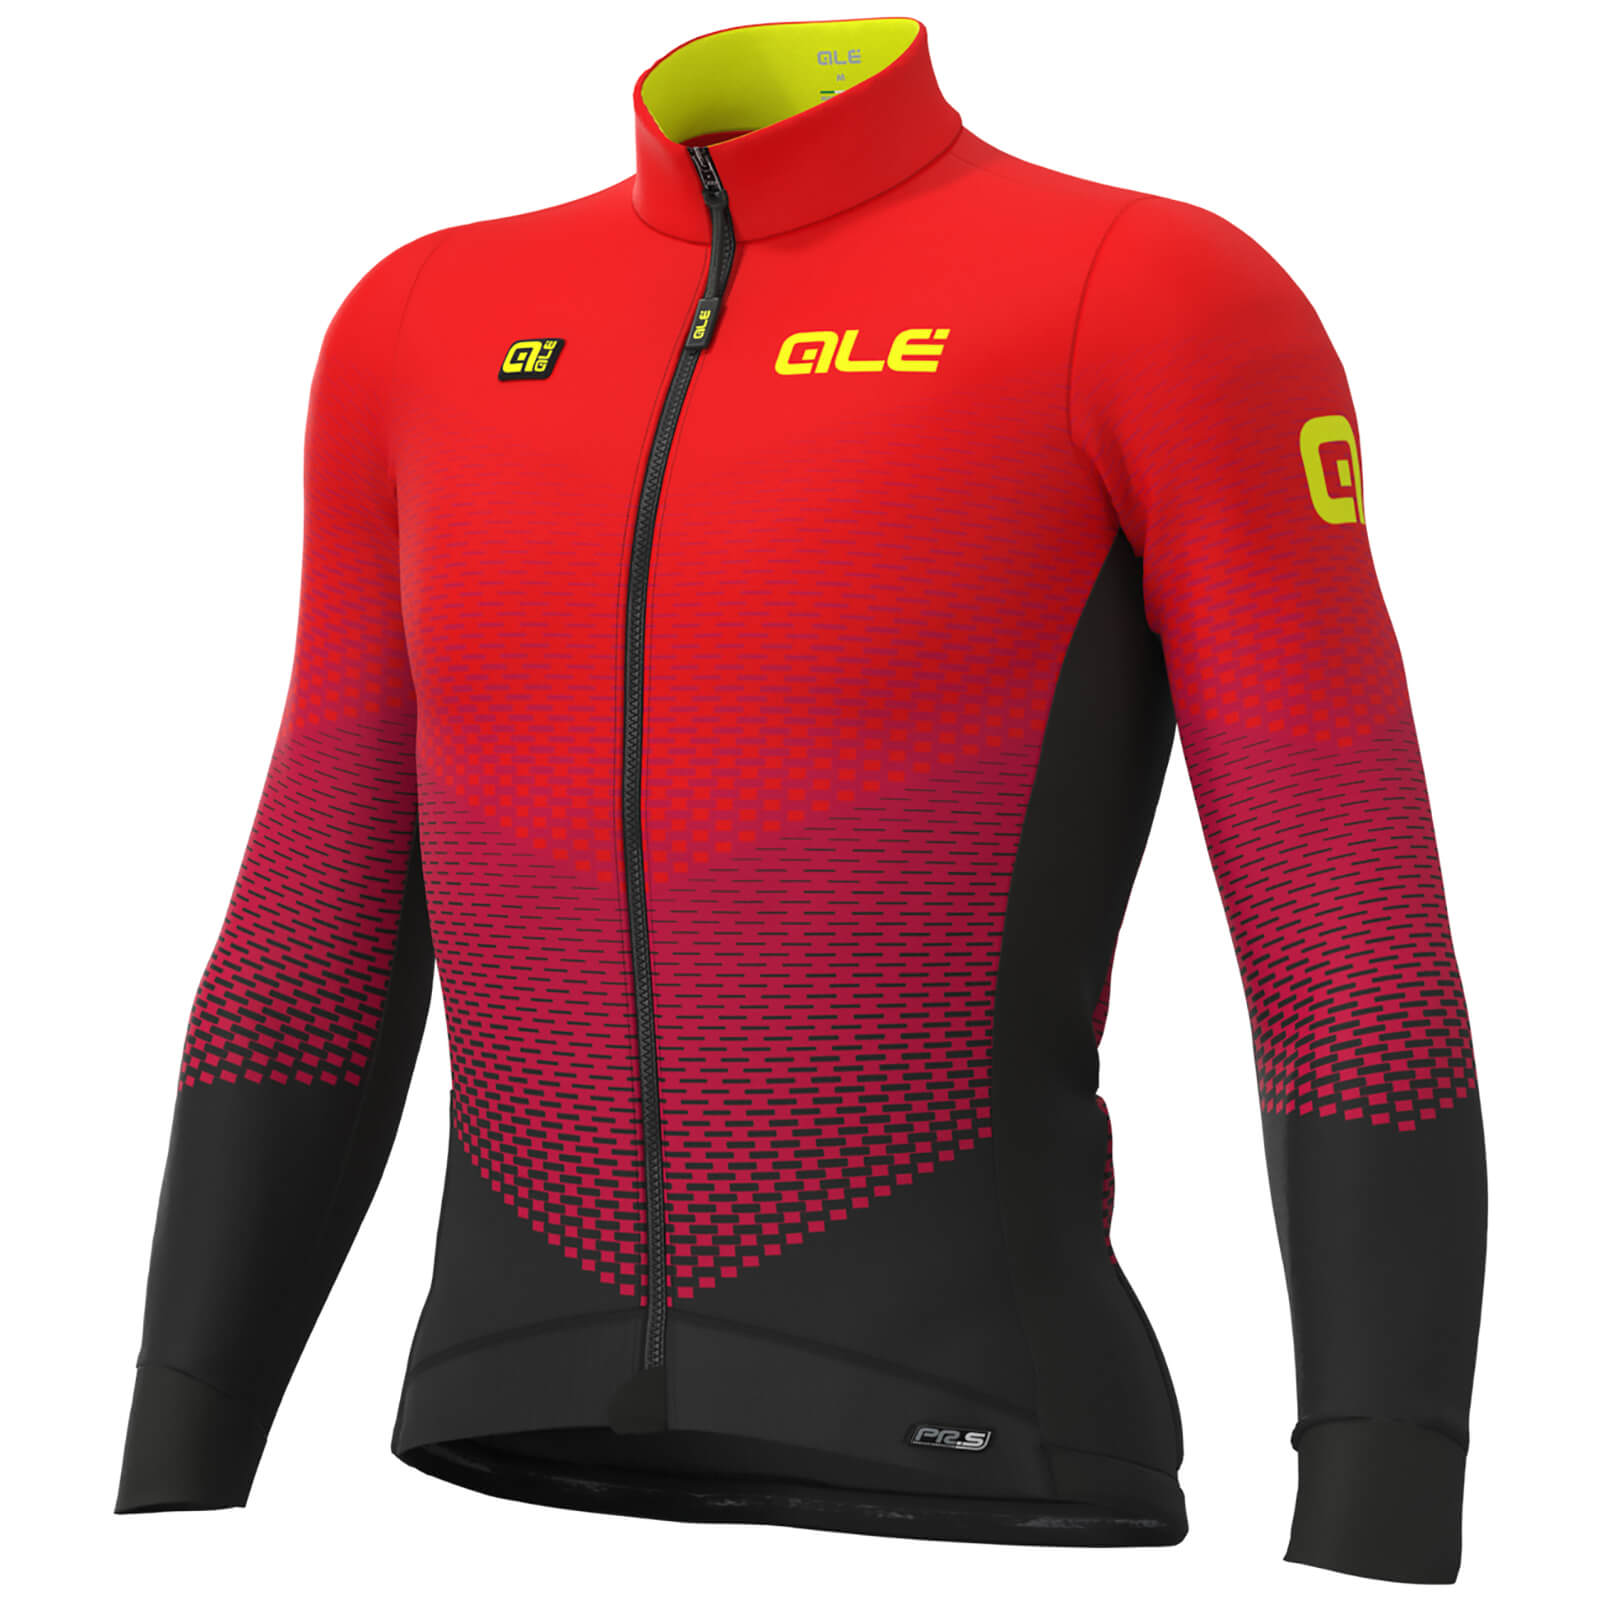 Alé Pr-S Delta Micro Long Sleeve Jersey - S - Black/Bordeaux/Red